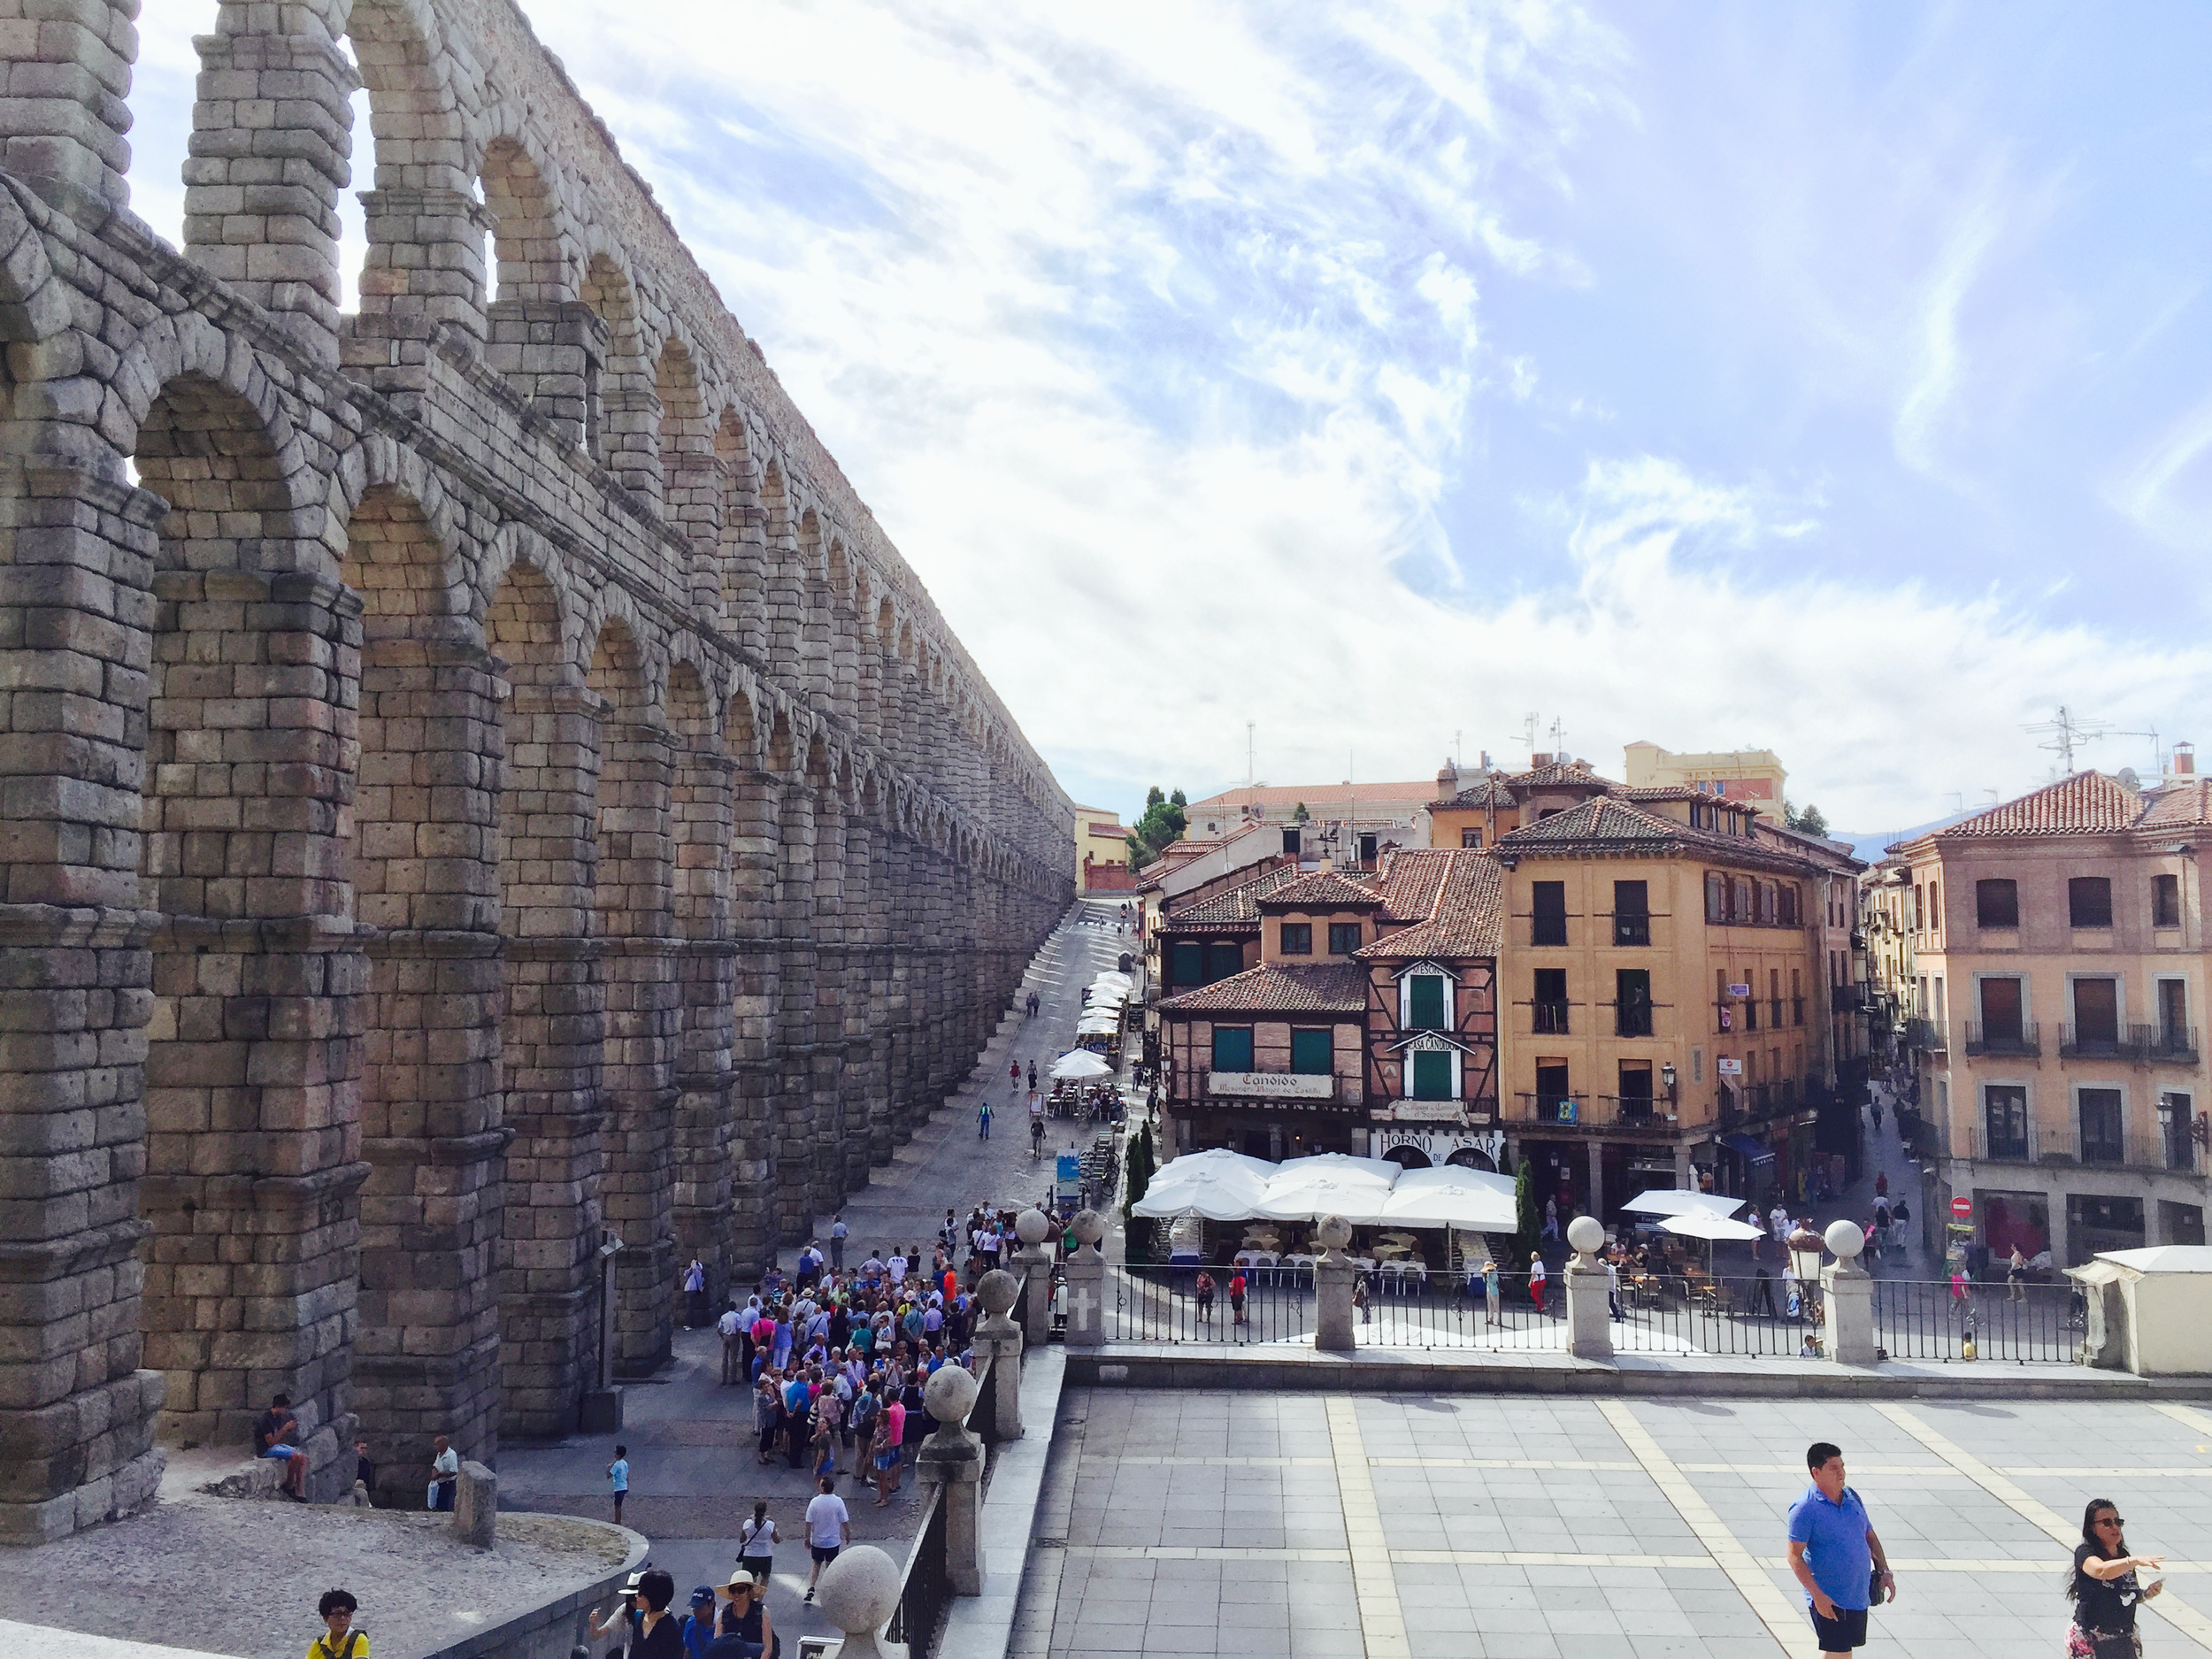 We loved our visit to Segovia, Spain and want to see more of the country!  (click to enlarge)